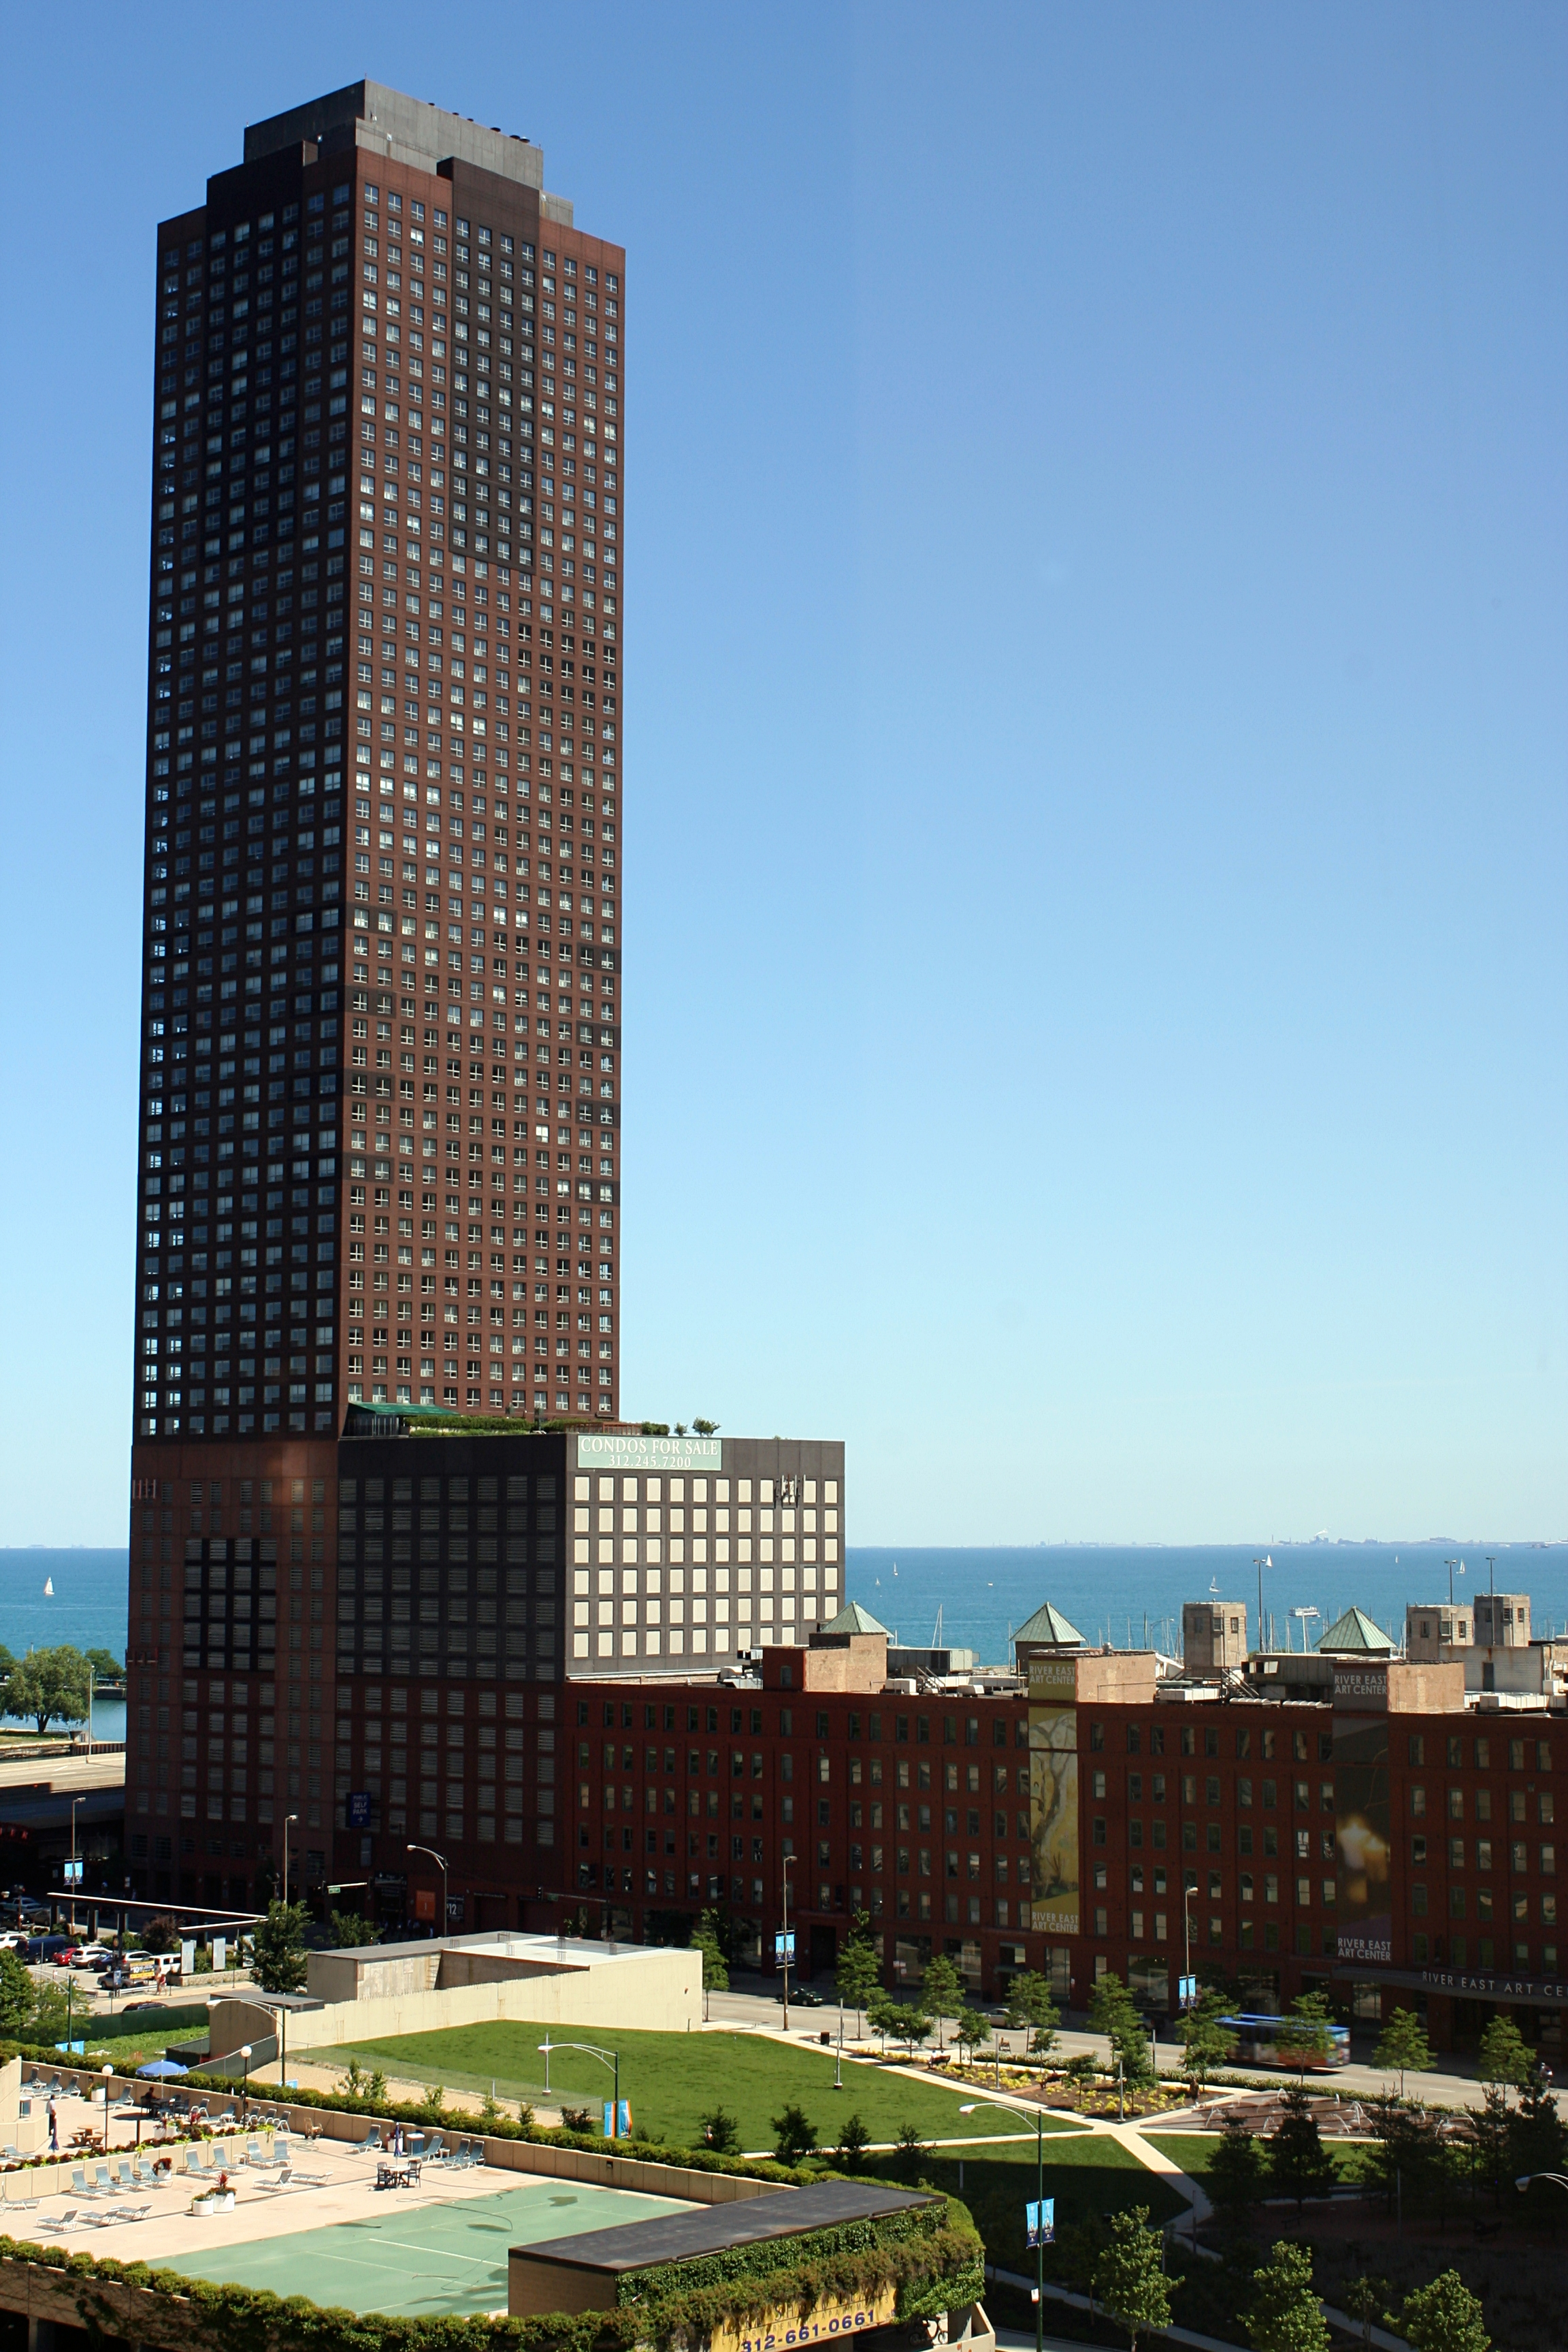 File:North Pier Apartments, Chicago.jpg - Wikimedia Commons